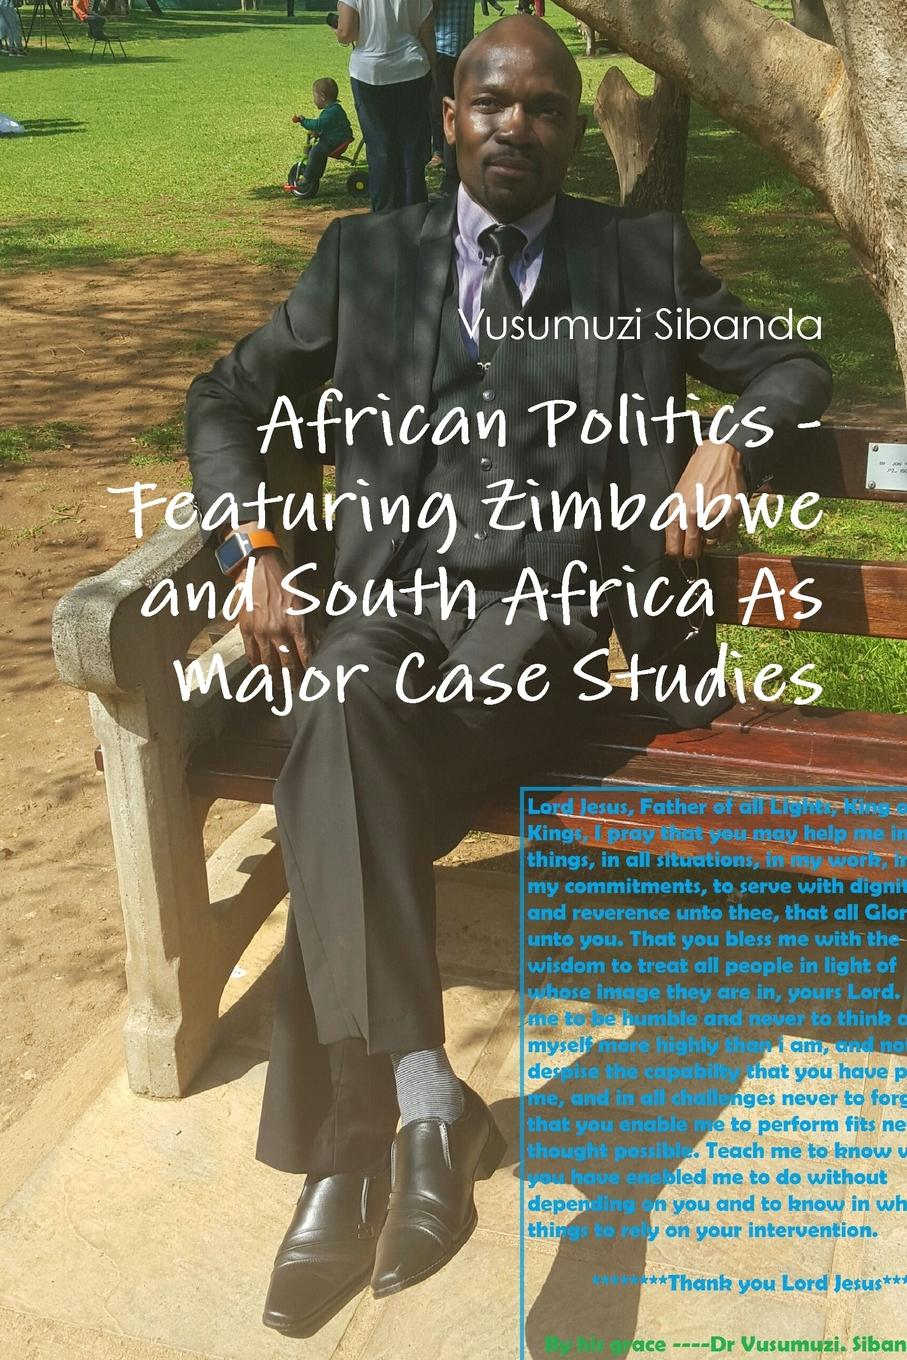 Vusumuzi Sibanda African Politics - Featuring Zimbabwe and South Africa As Major Case Studies john philip researches in south africa vol 2